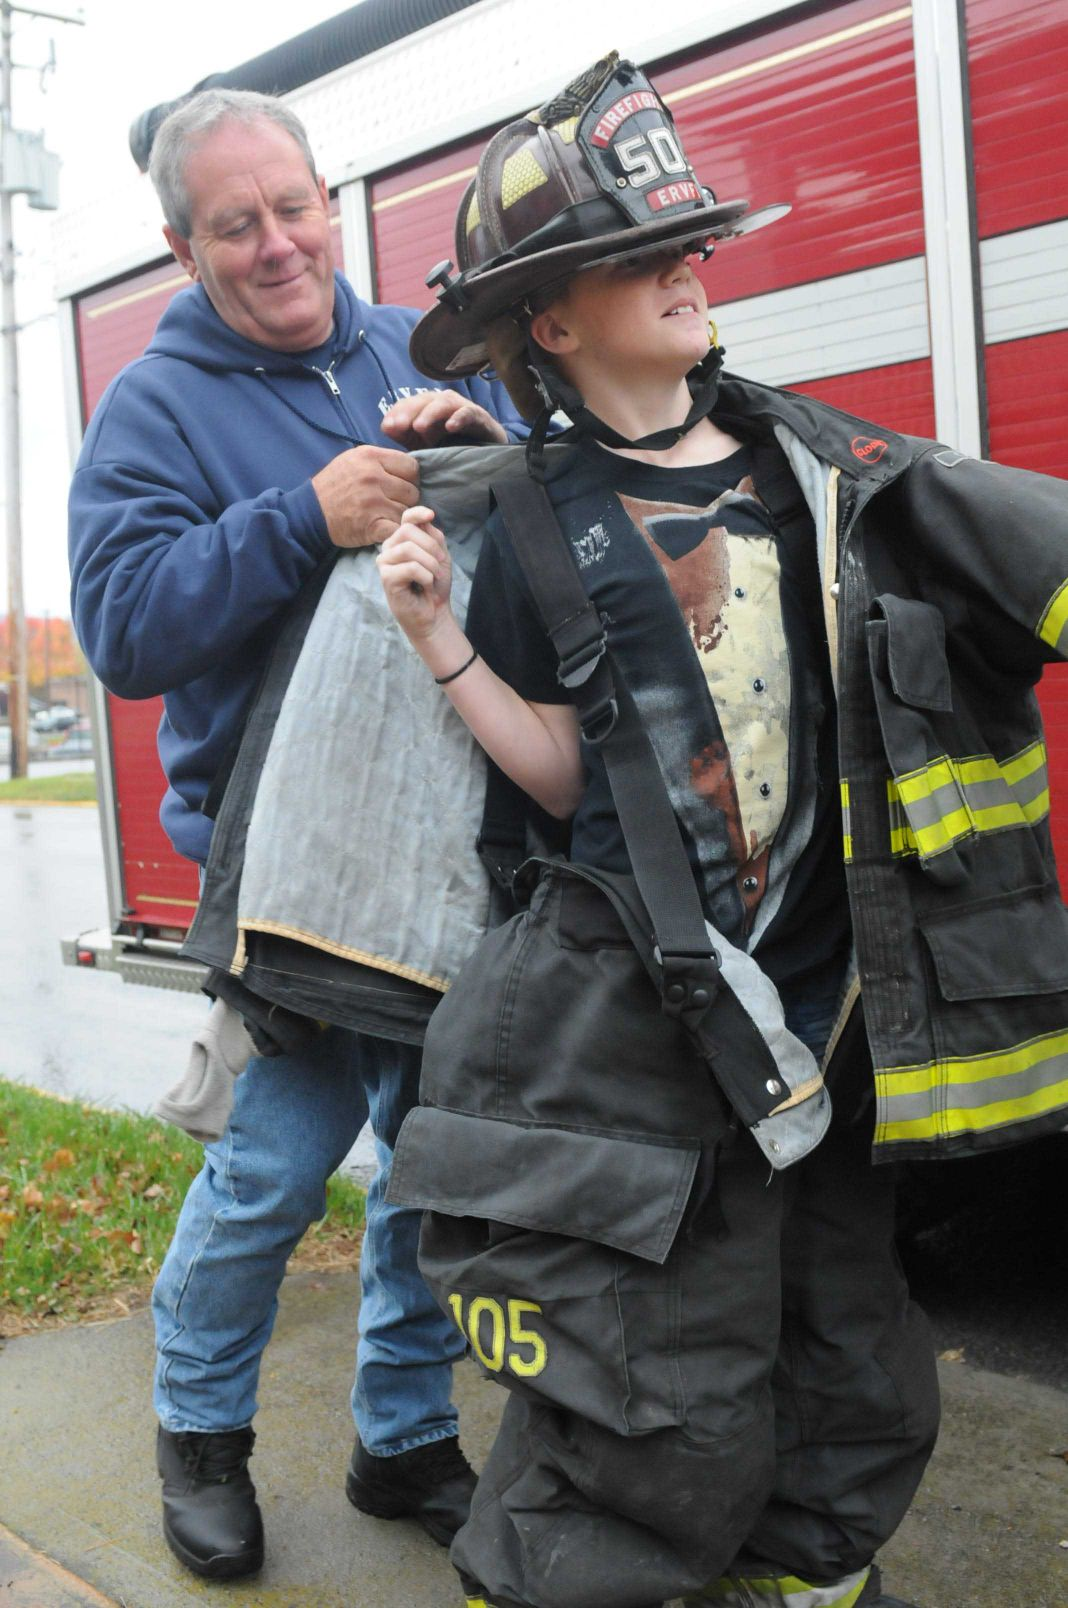 Candy, Fingerprinting and Fire Safety Education at Child